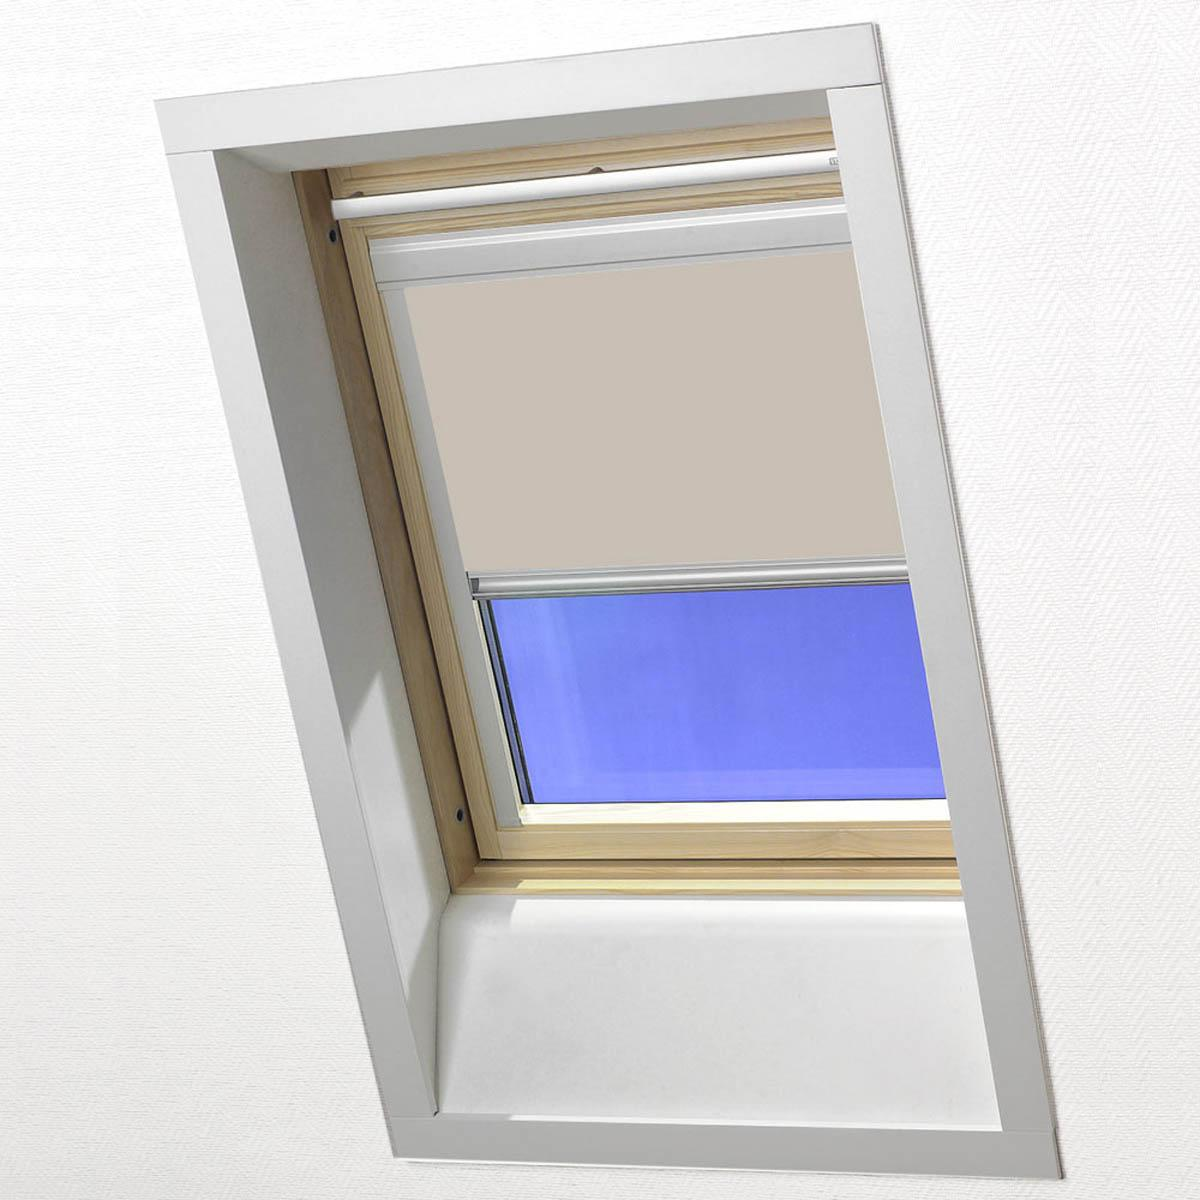 Velux skylight blinds best price house plans Velux skylight shade